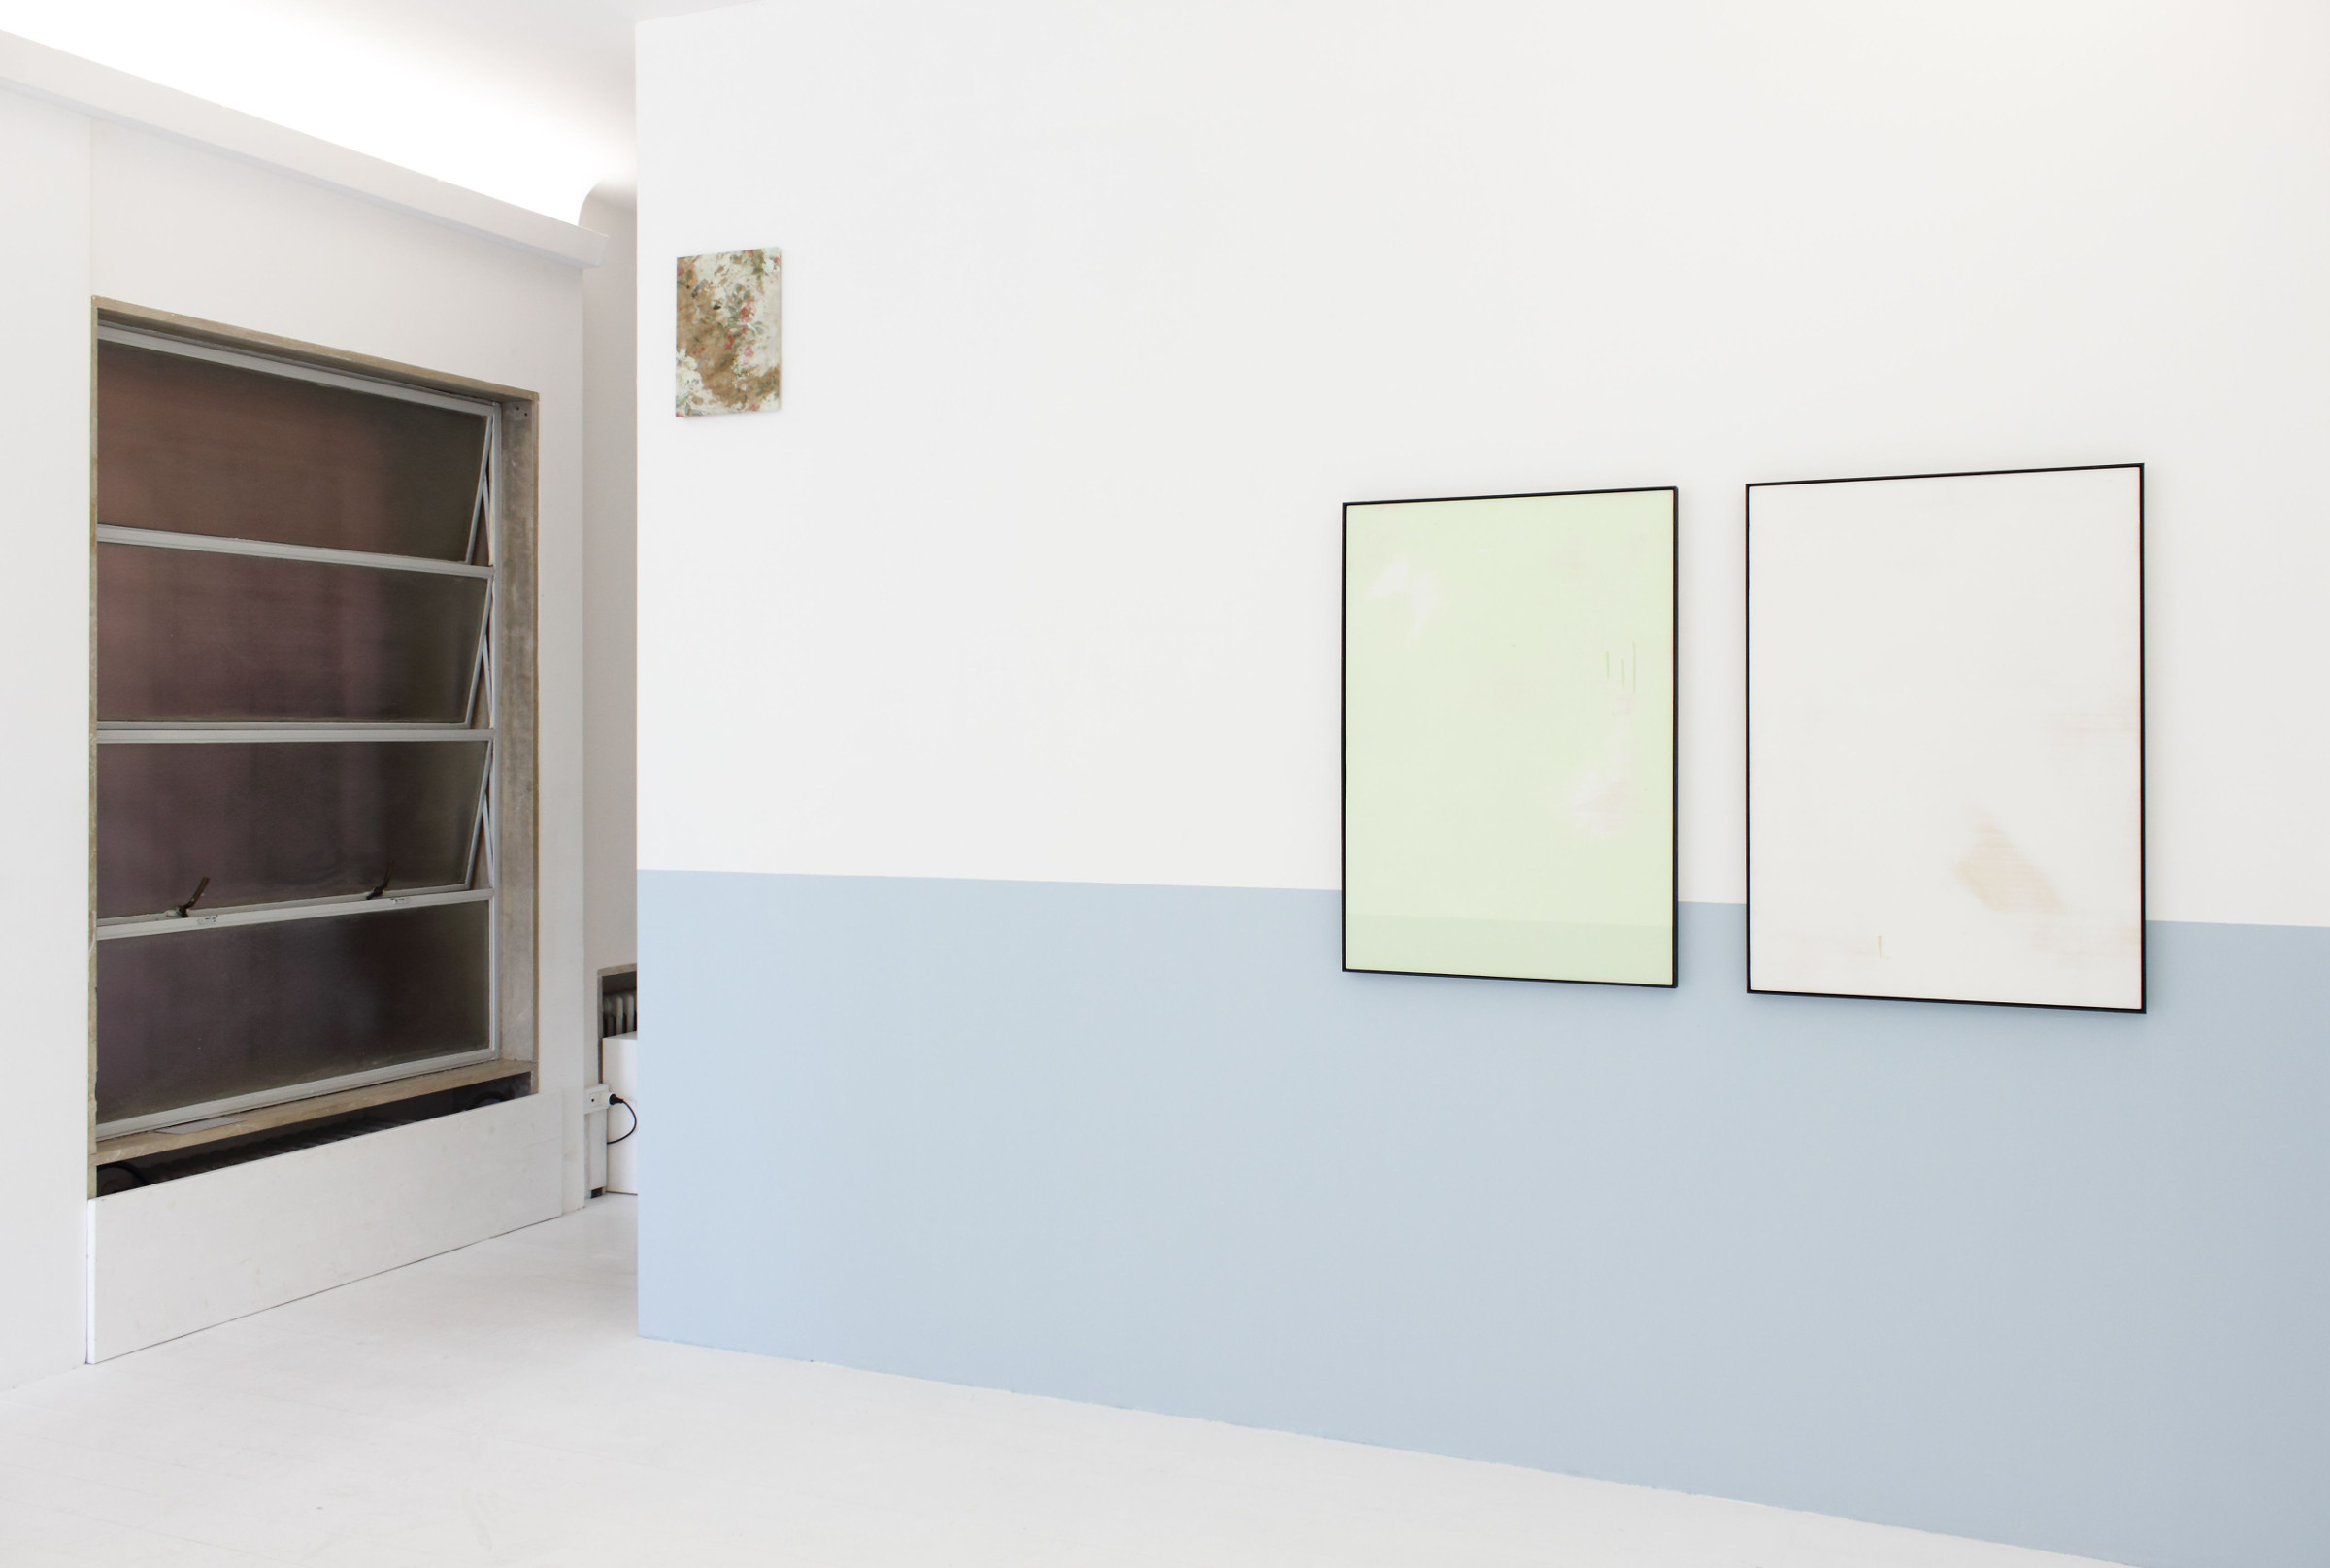 4_Tiziano Martini, 2014, view, #painting. about, around & within, Galleria Upp, Venice